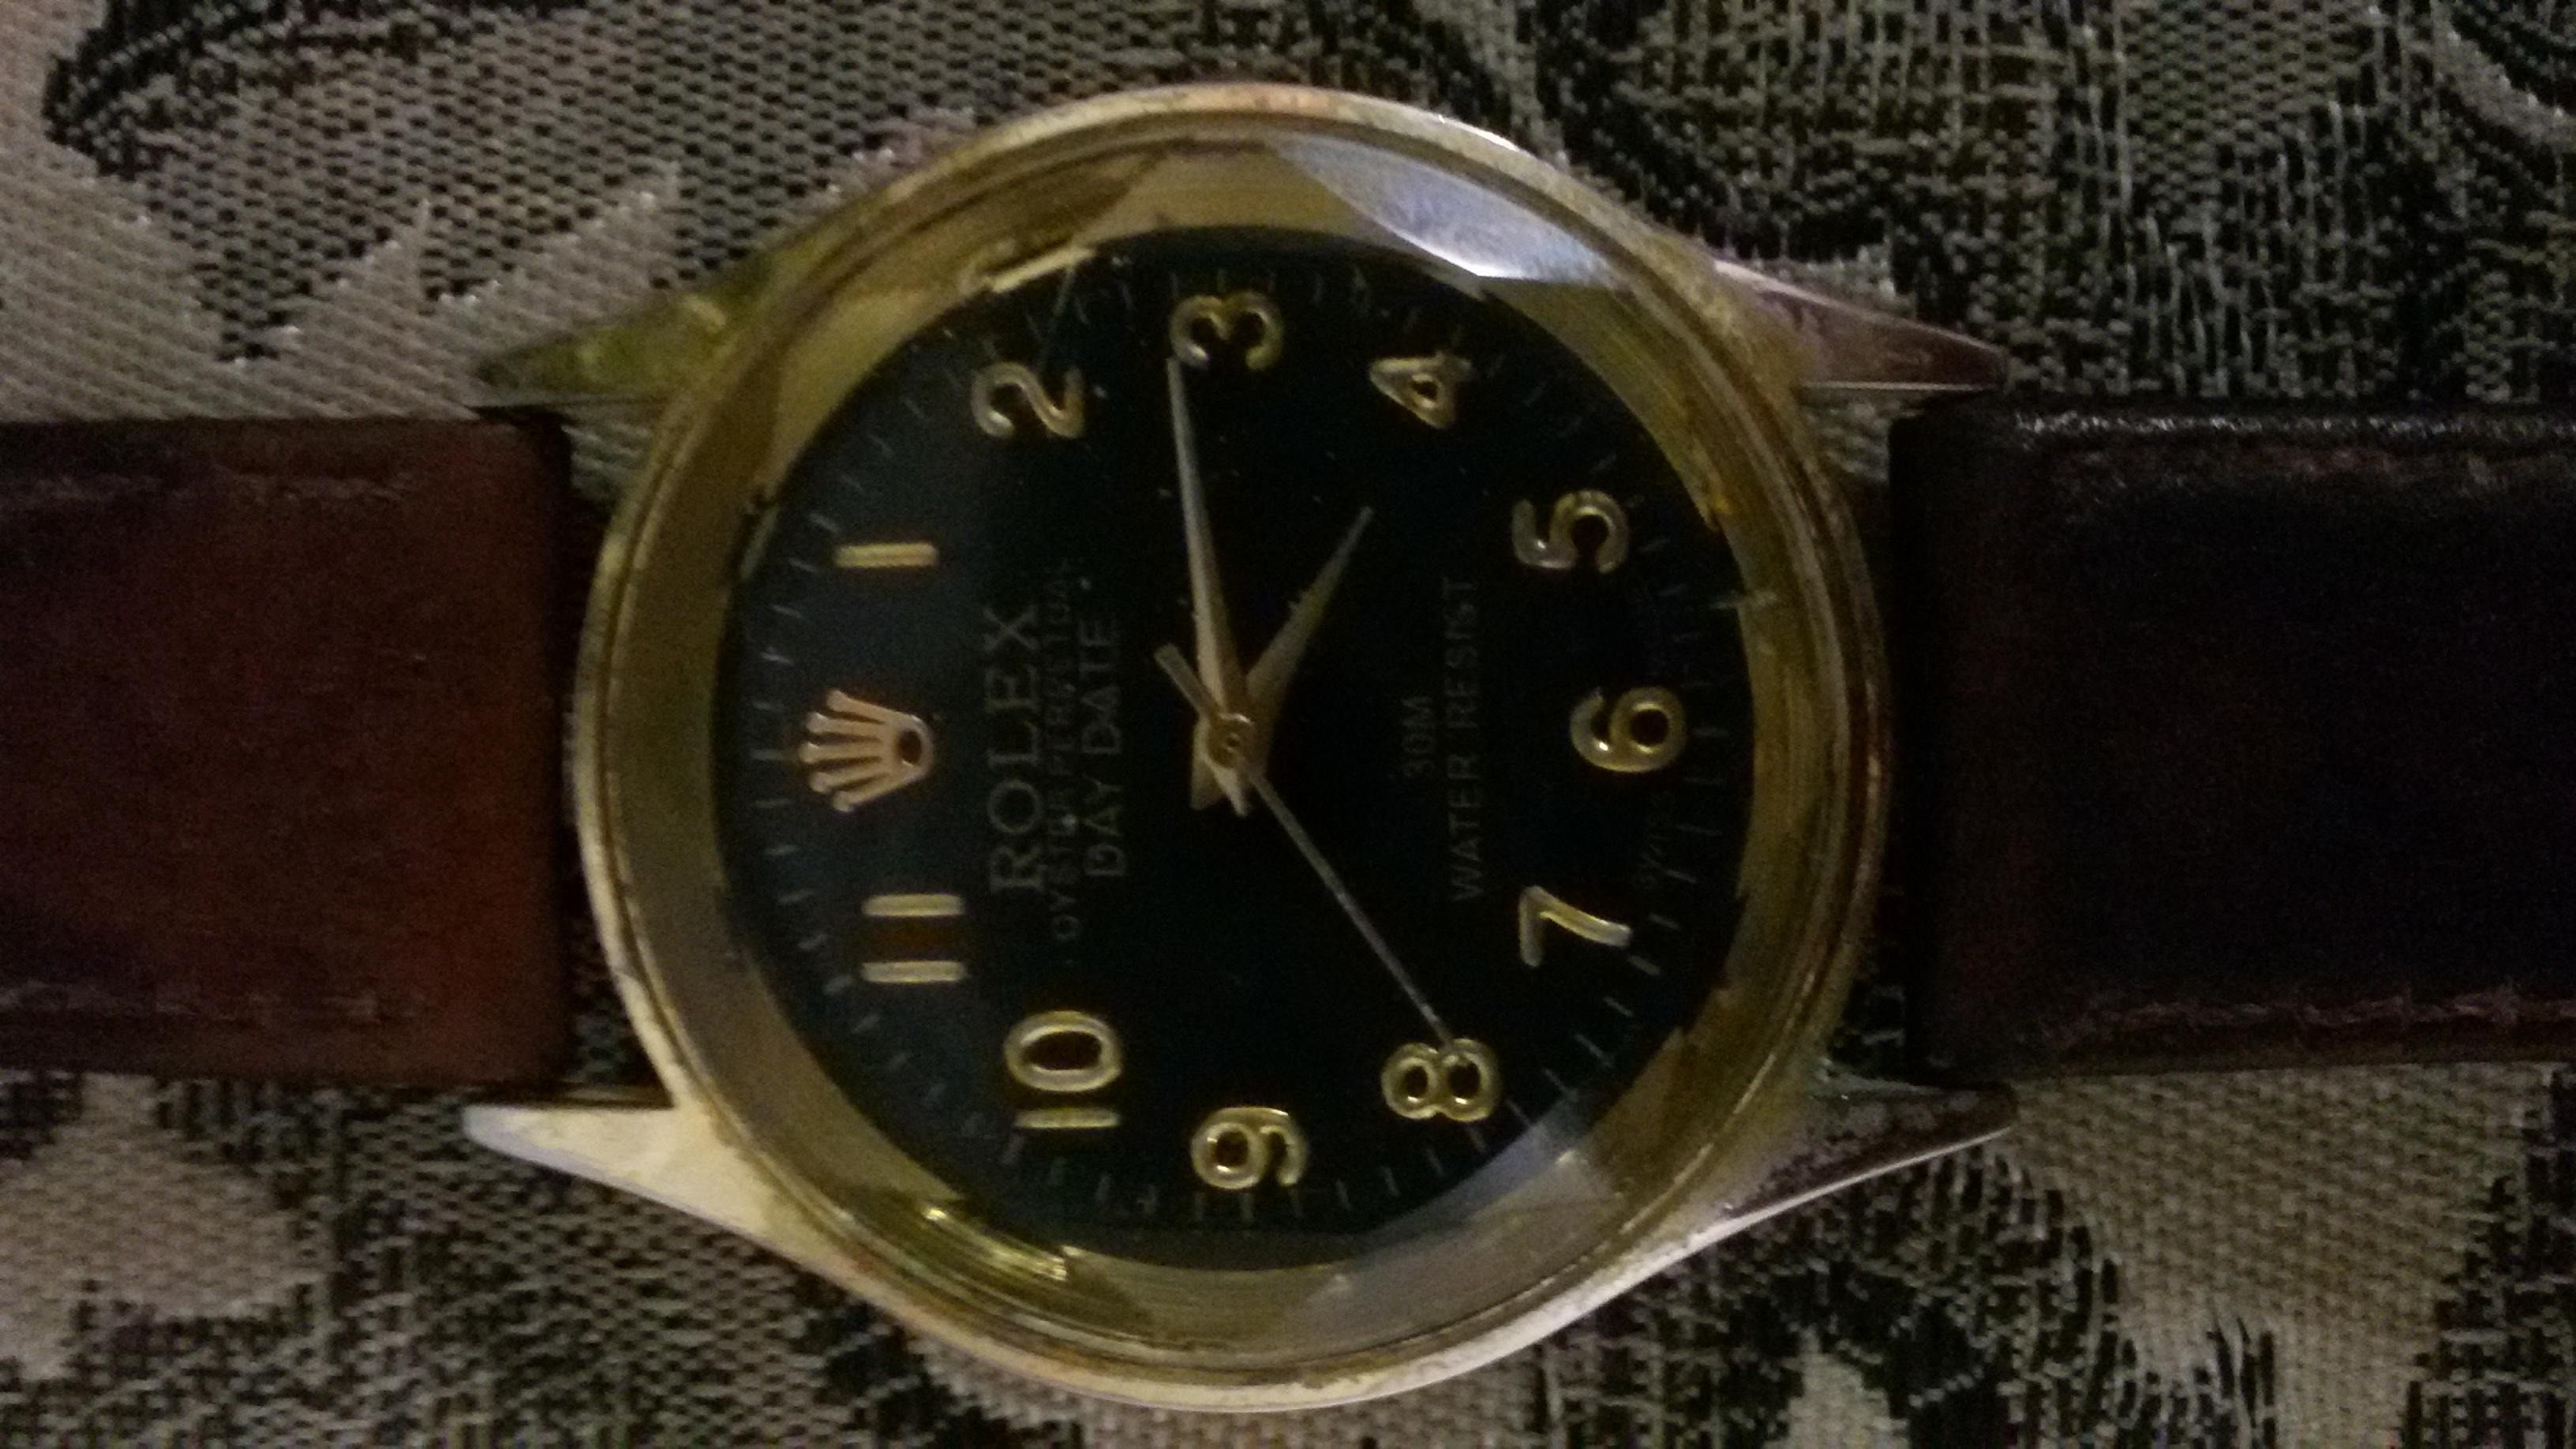 Rolex oyster perpetual day,date 30m water resist